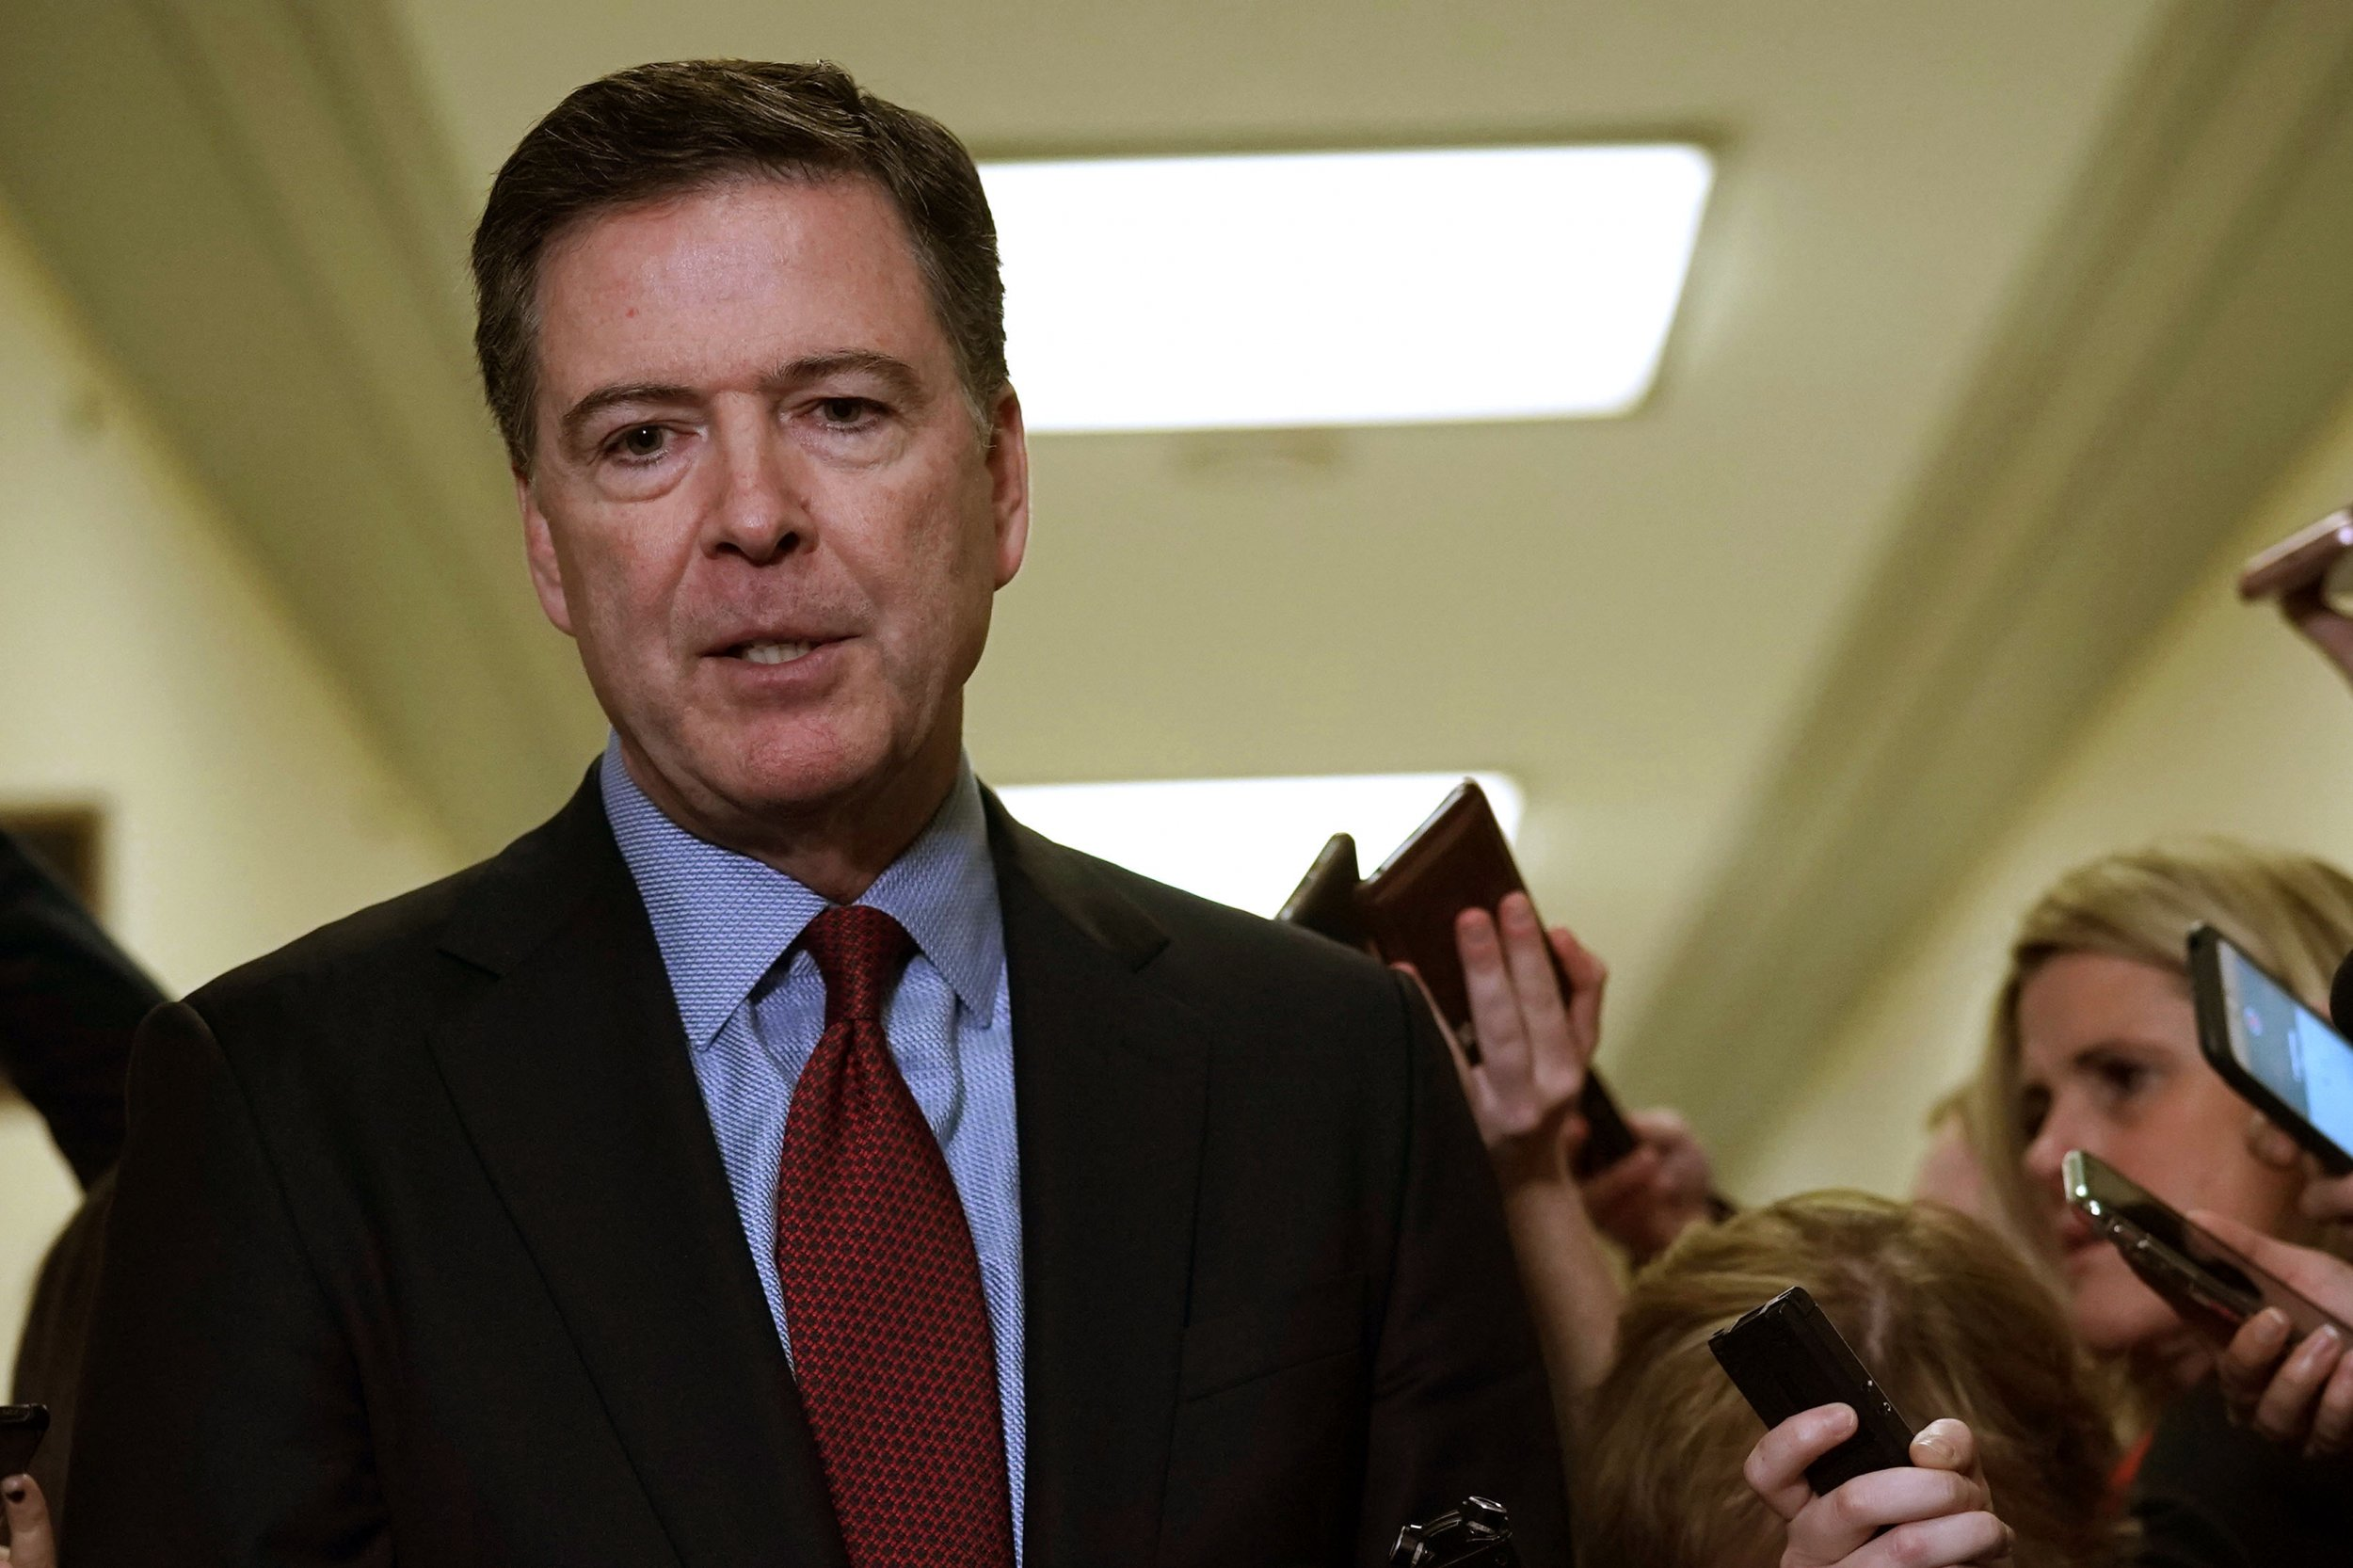 James Comey Blasts Having to Talk Again About 'Hillary Clinton's Emails for Heaven's Sake', Will Return for Second Testimony